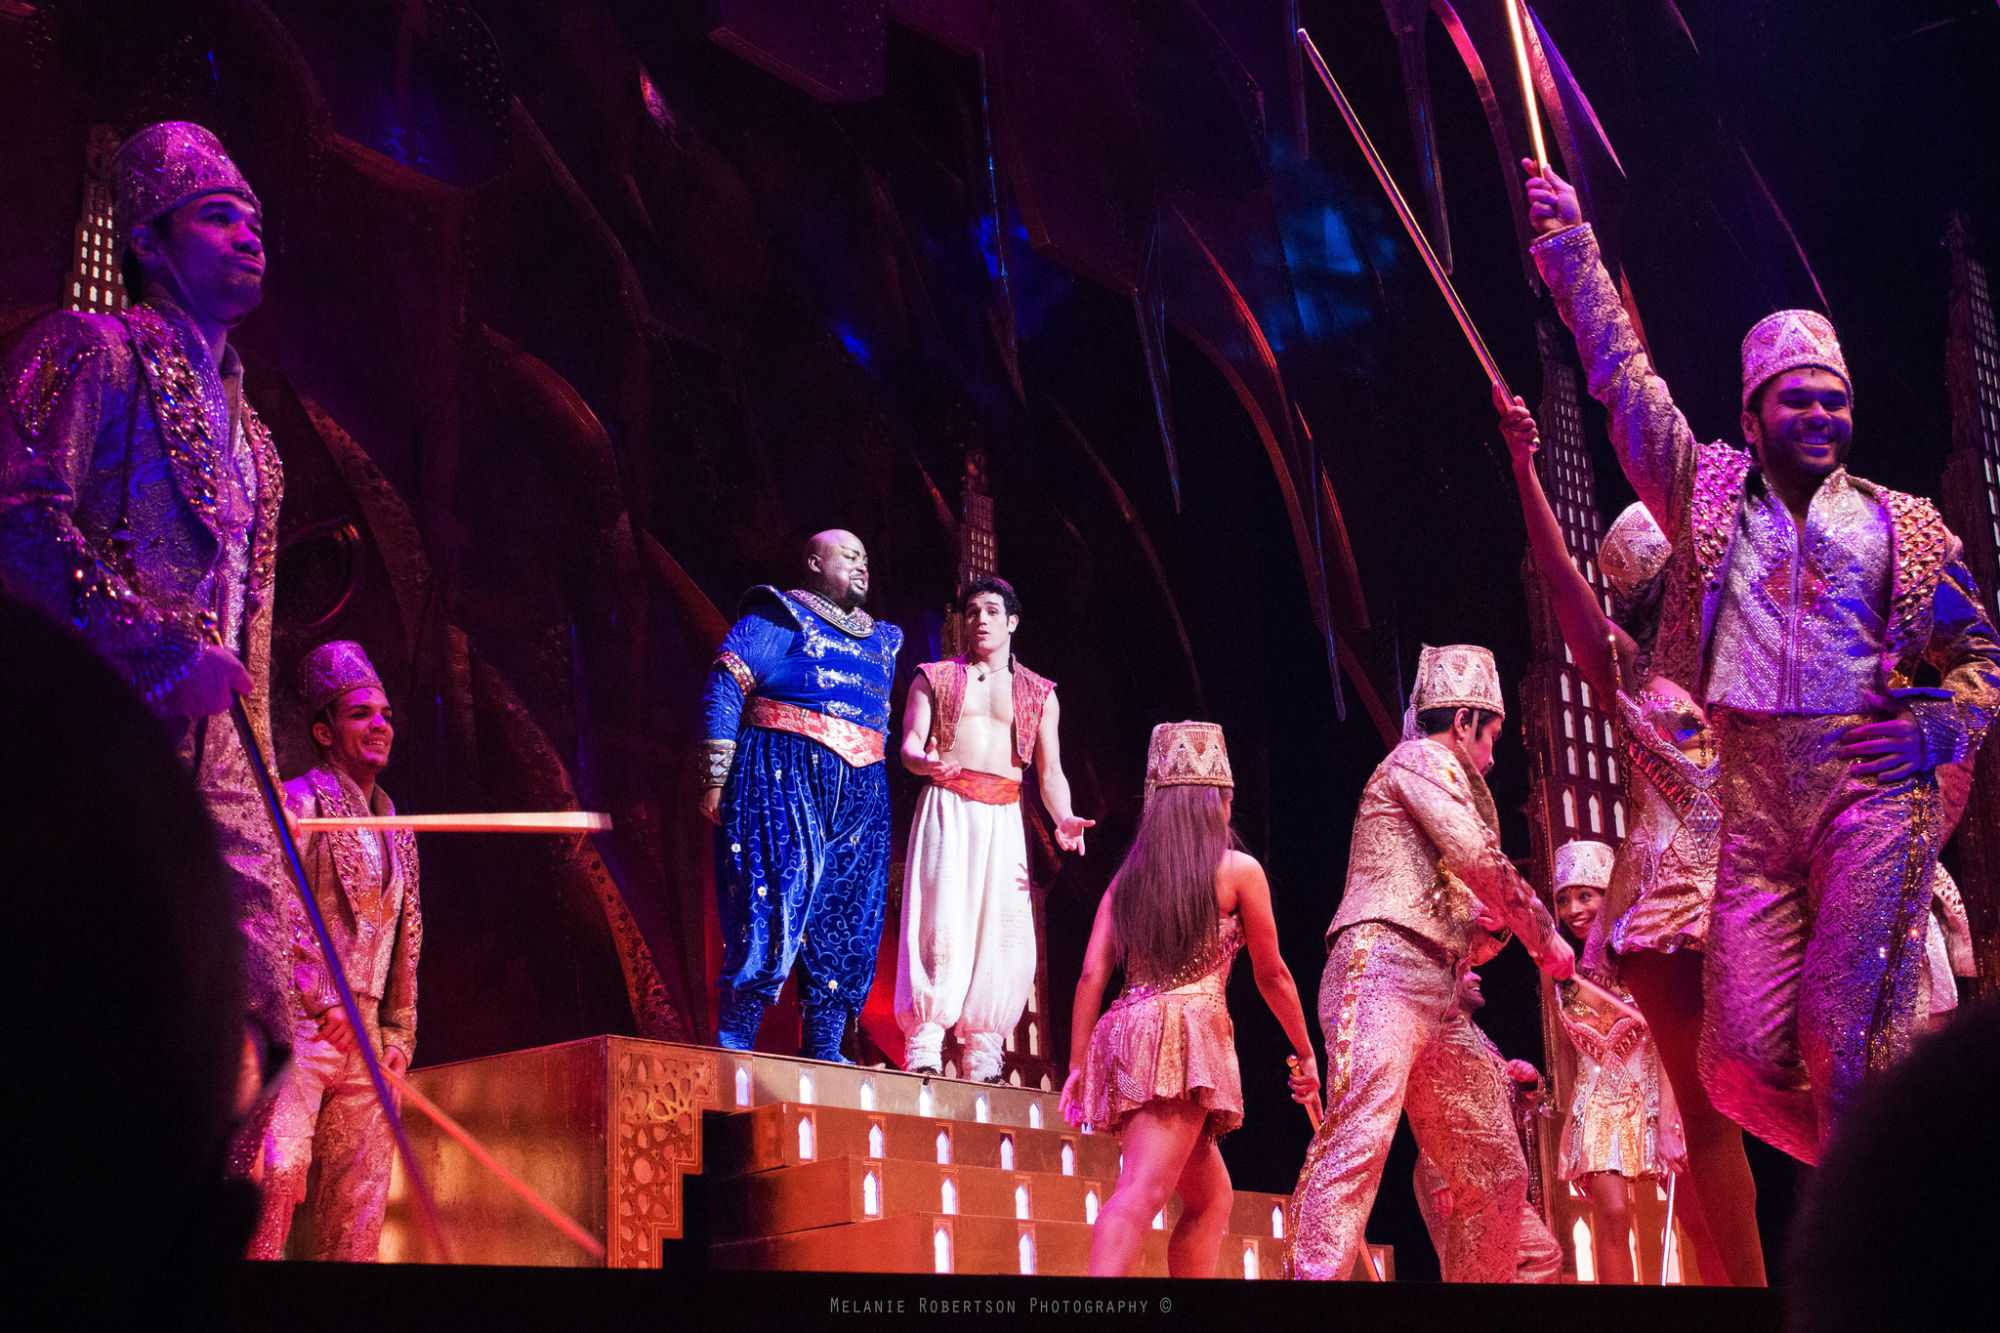 Escape to Agrabah in Disney's live action production of Aladdin